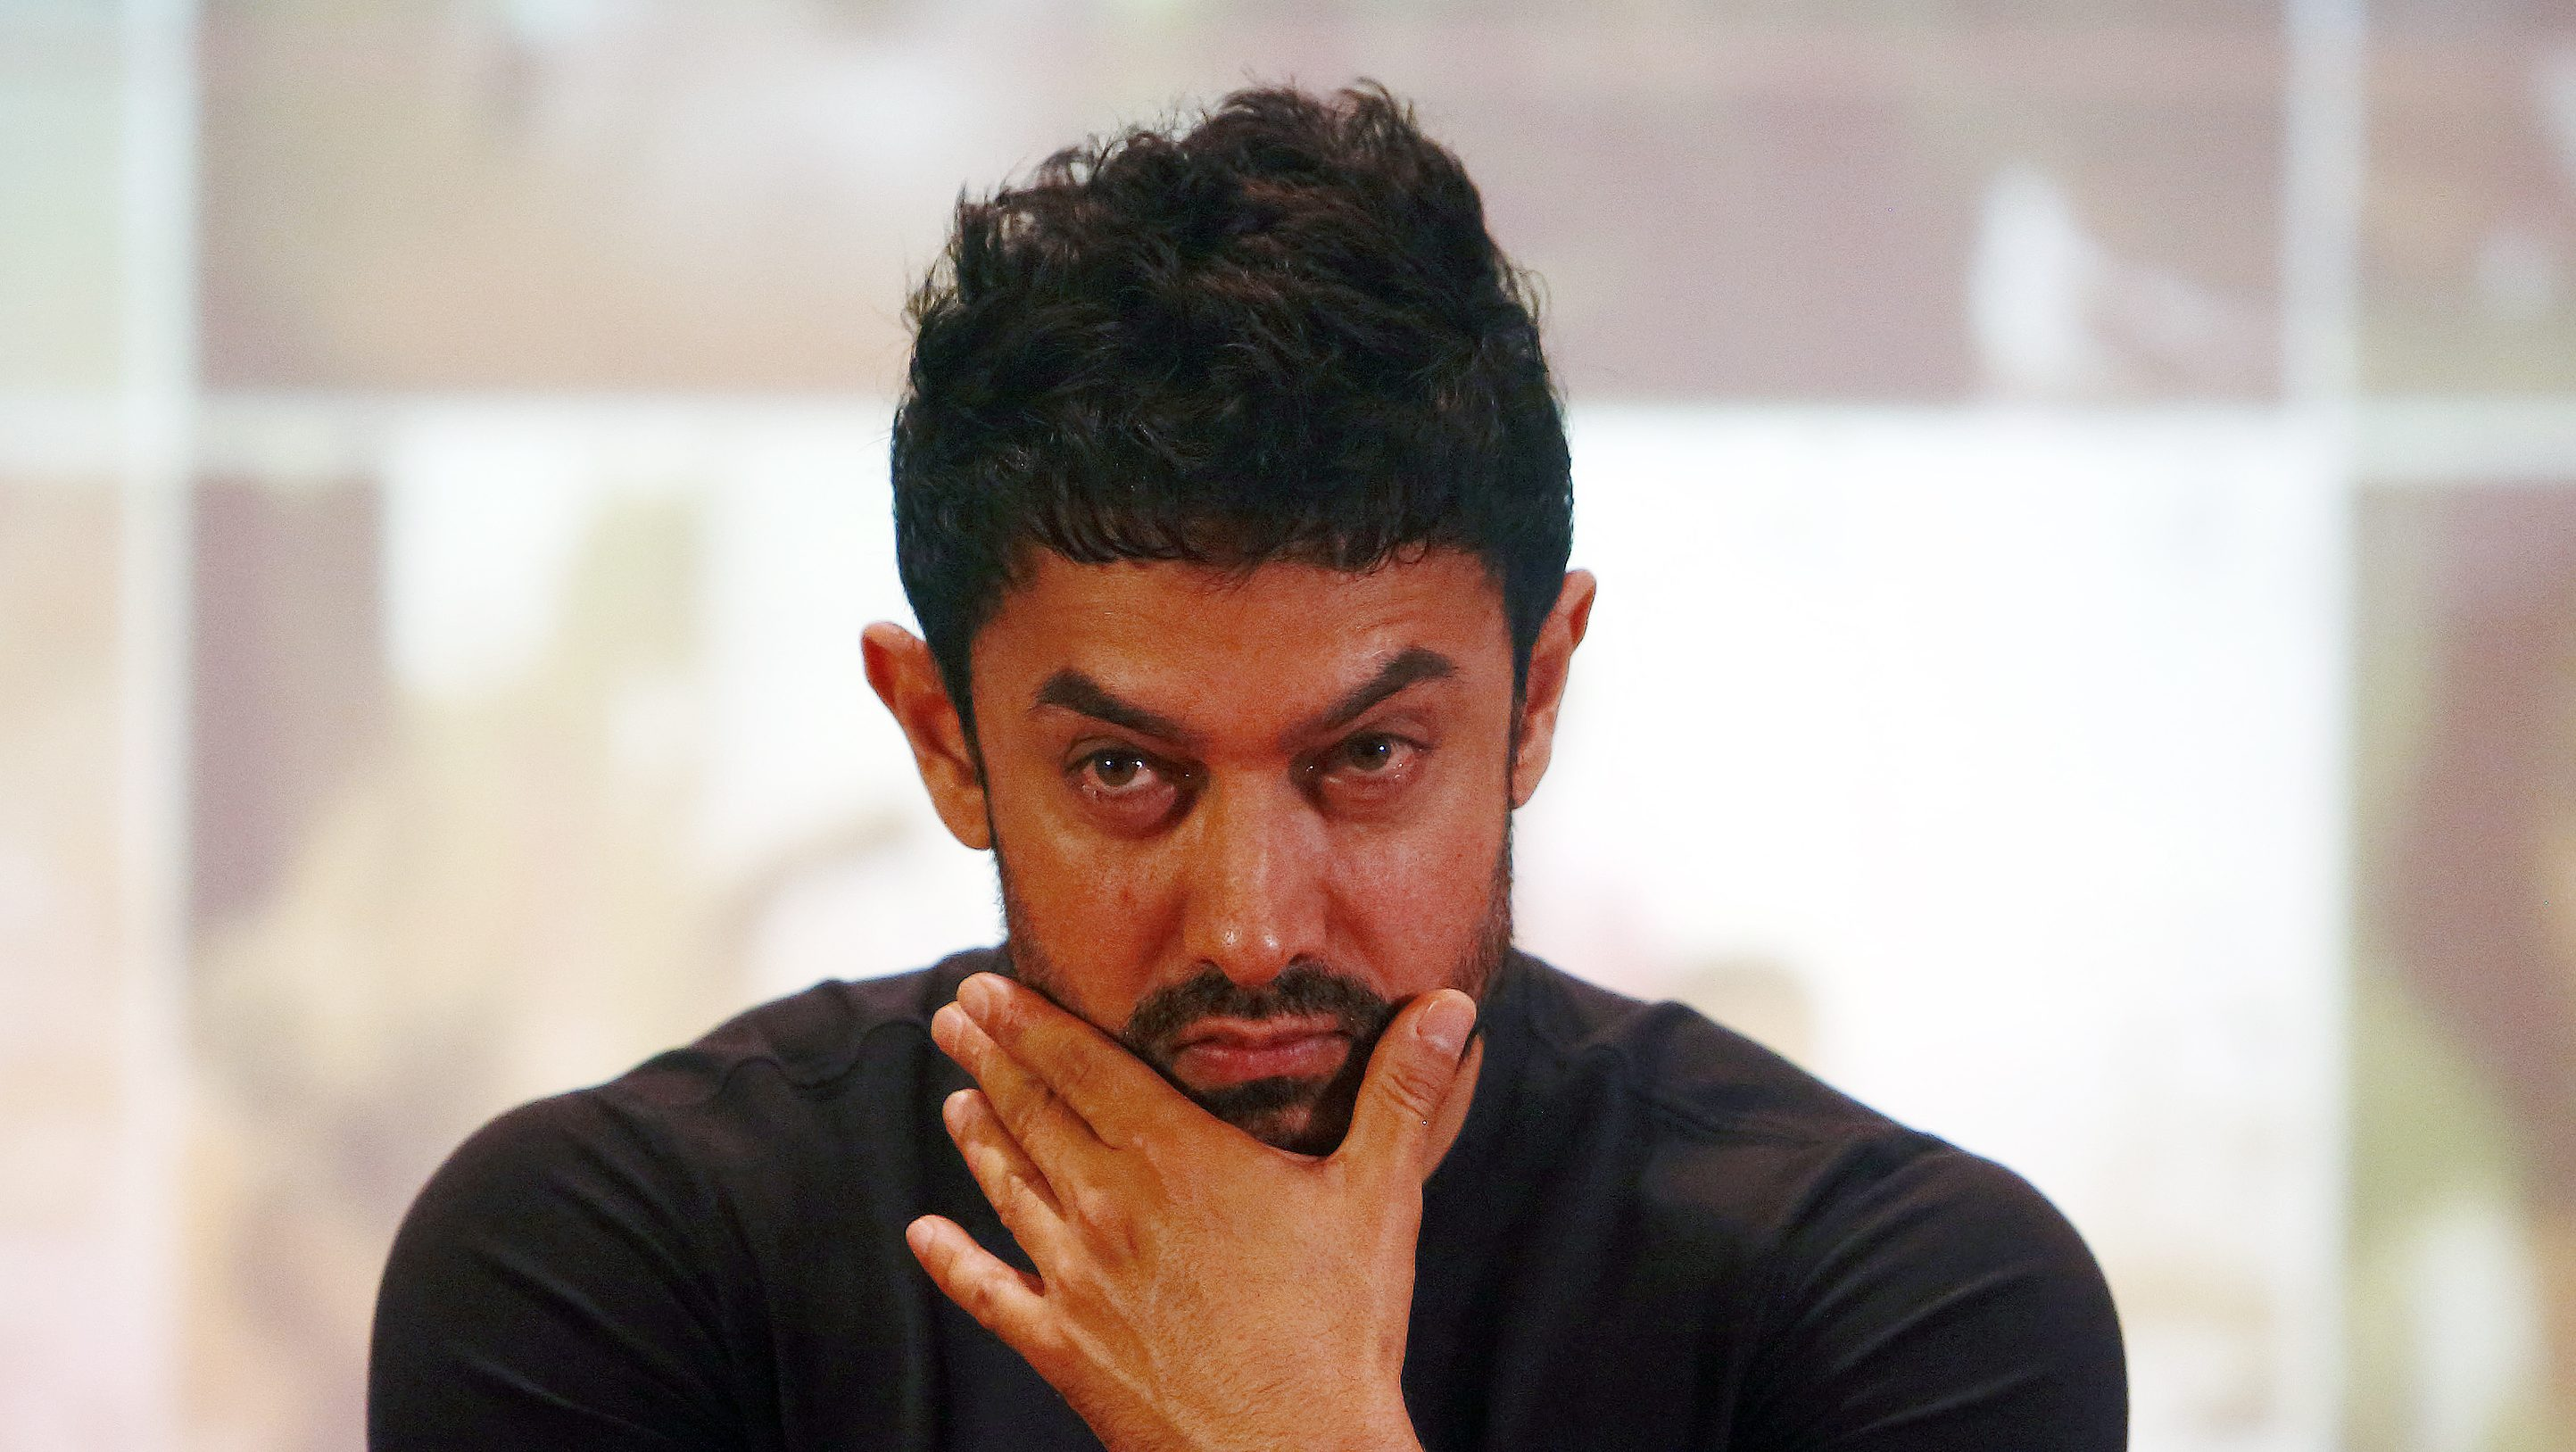 Bollywood actor Aamir Khan attends a news conference after an event to launch him as a United Nations Children's Fund (UNICEF) Regional Goodwill Ambassador for south Asia, in Kathmandu October 9, 2014. REUTERS/Navesh Chitrakar (NEPAL - Tags: ENTERTAINMENT POLITICS SOCIETY) - RTR49HYR